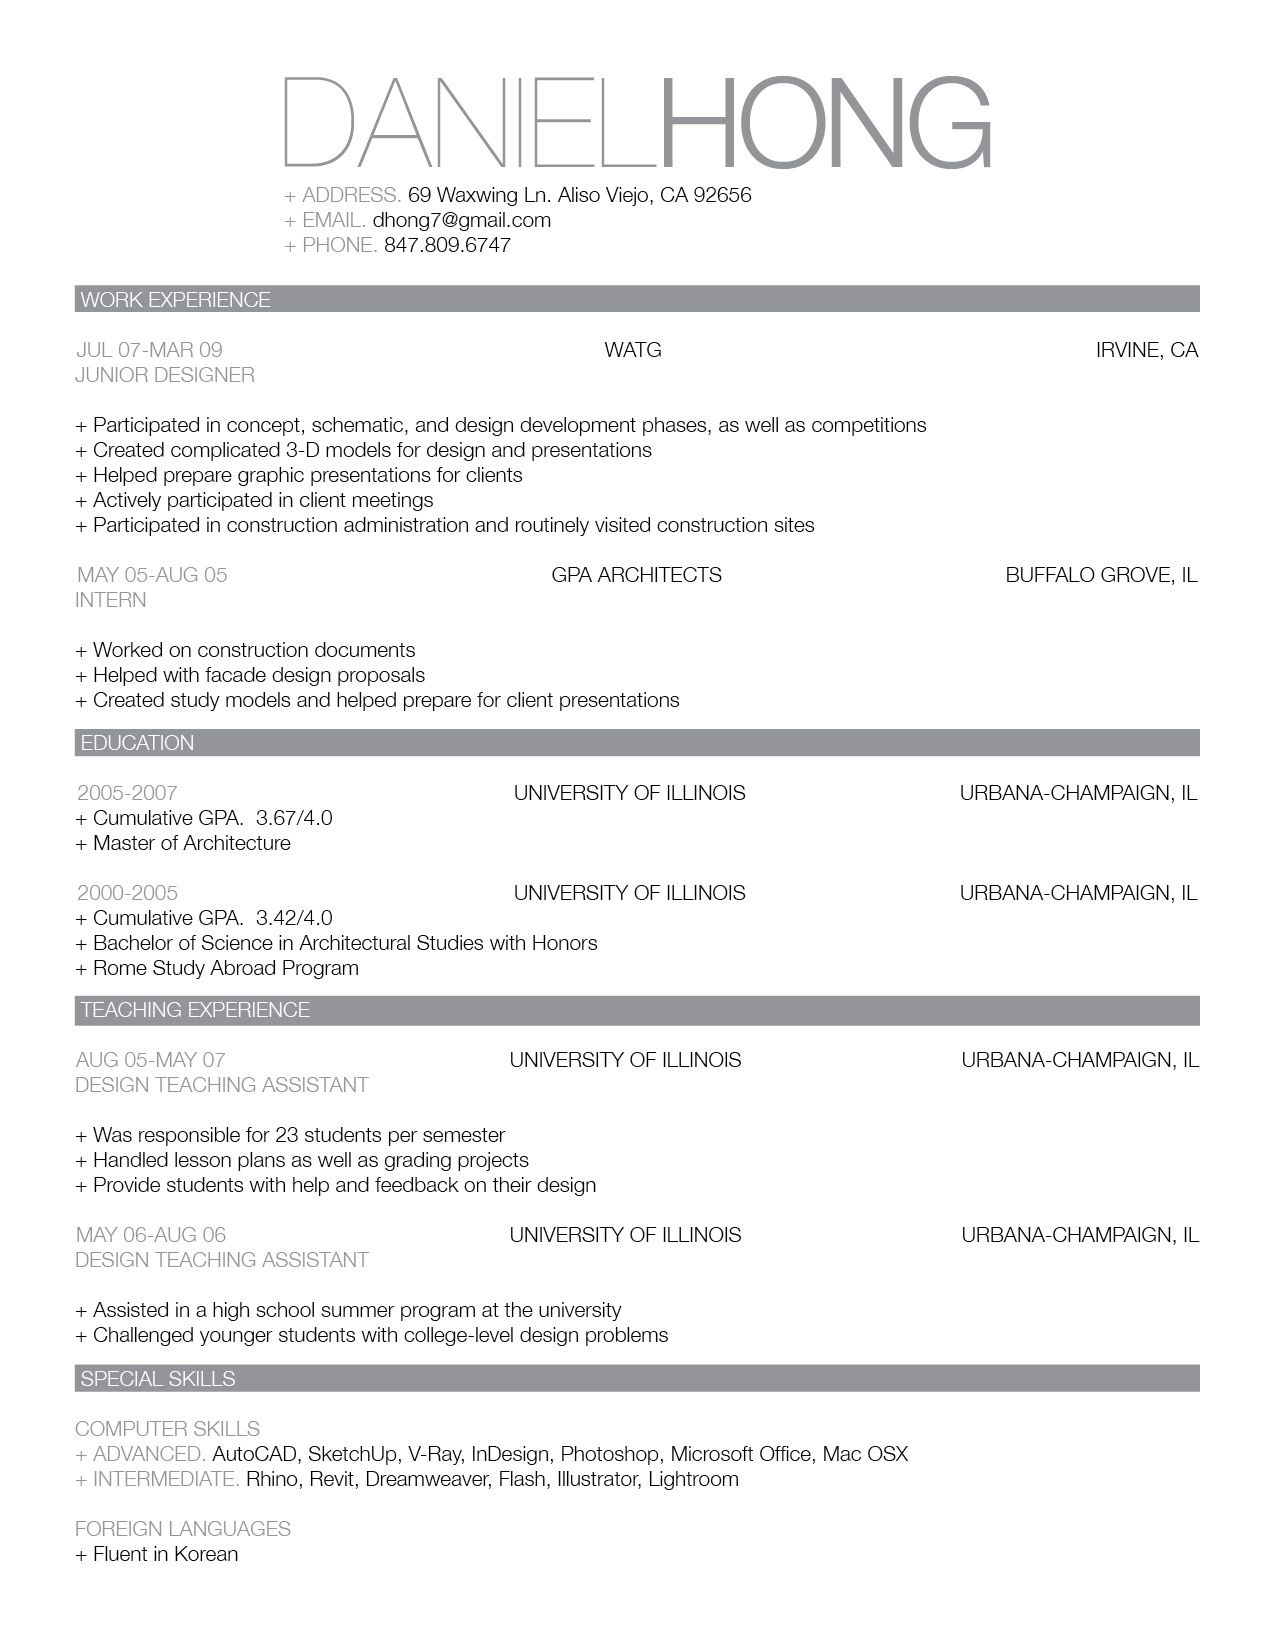 Updated CV and Work Sample